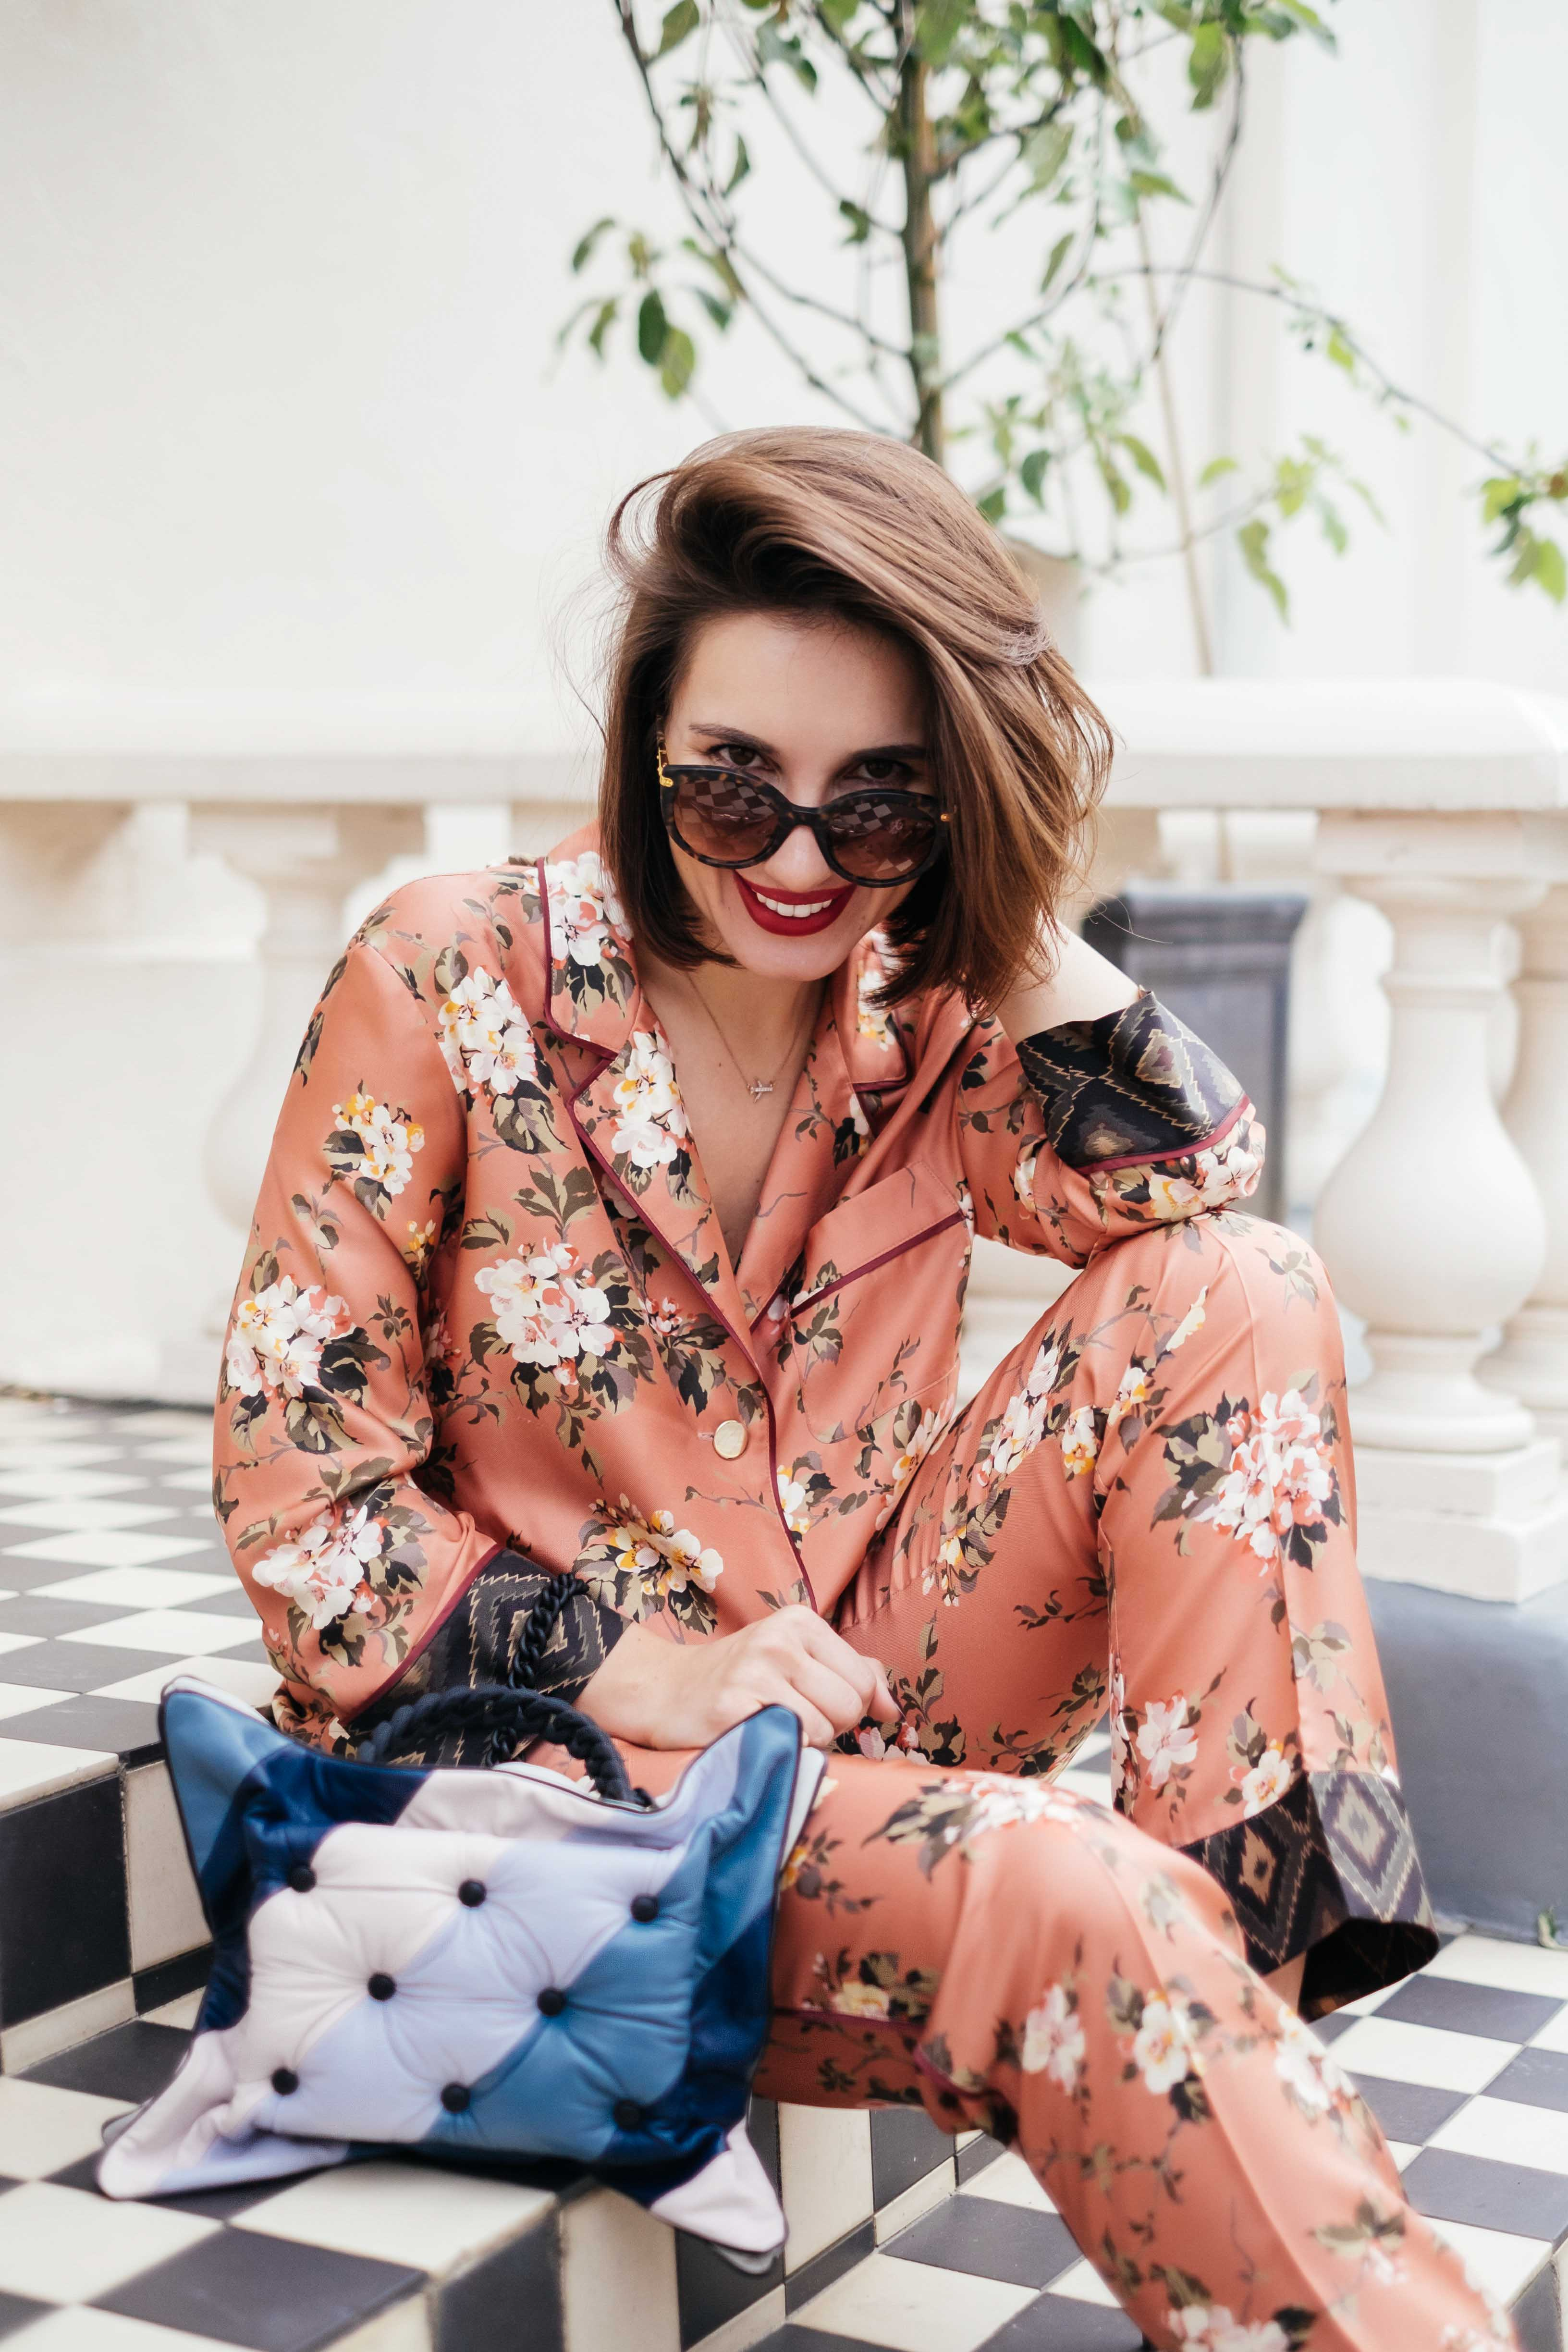 7 More Minutes. Fashion, travel and lifestyle blog by Alyona Gasimova. Почему Стоит Провести Понедельник В Пижаме. For Restless Sleepers. Pyjama as daywear. www.7moreminutes.com